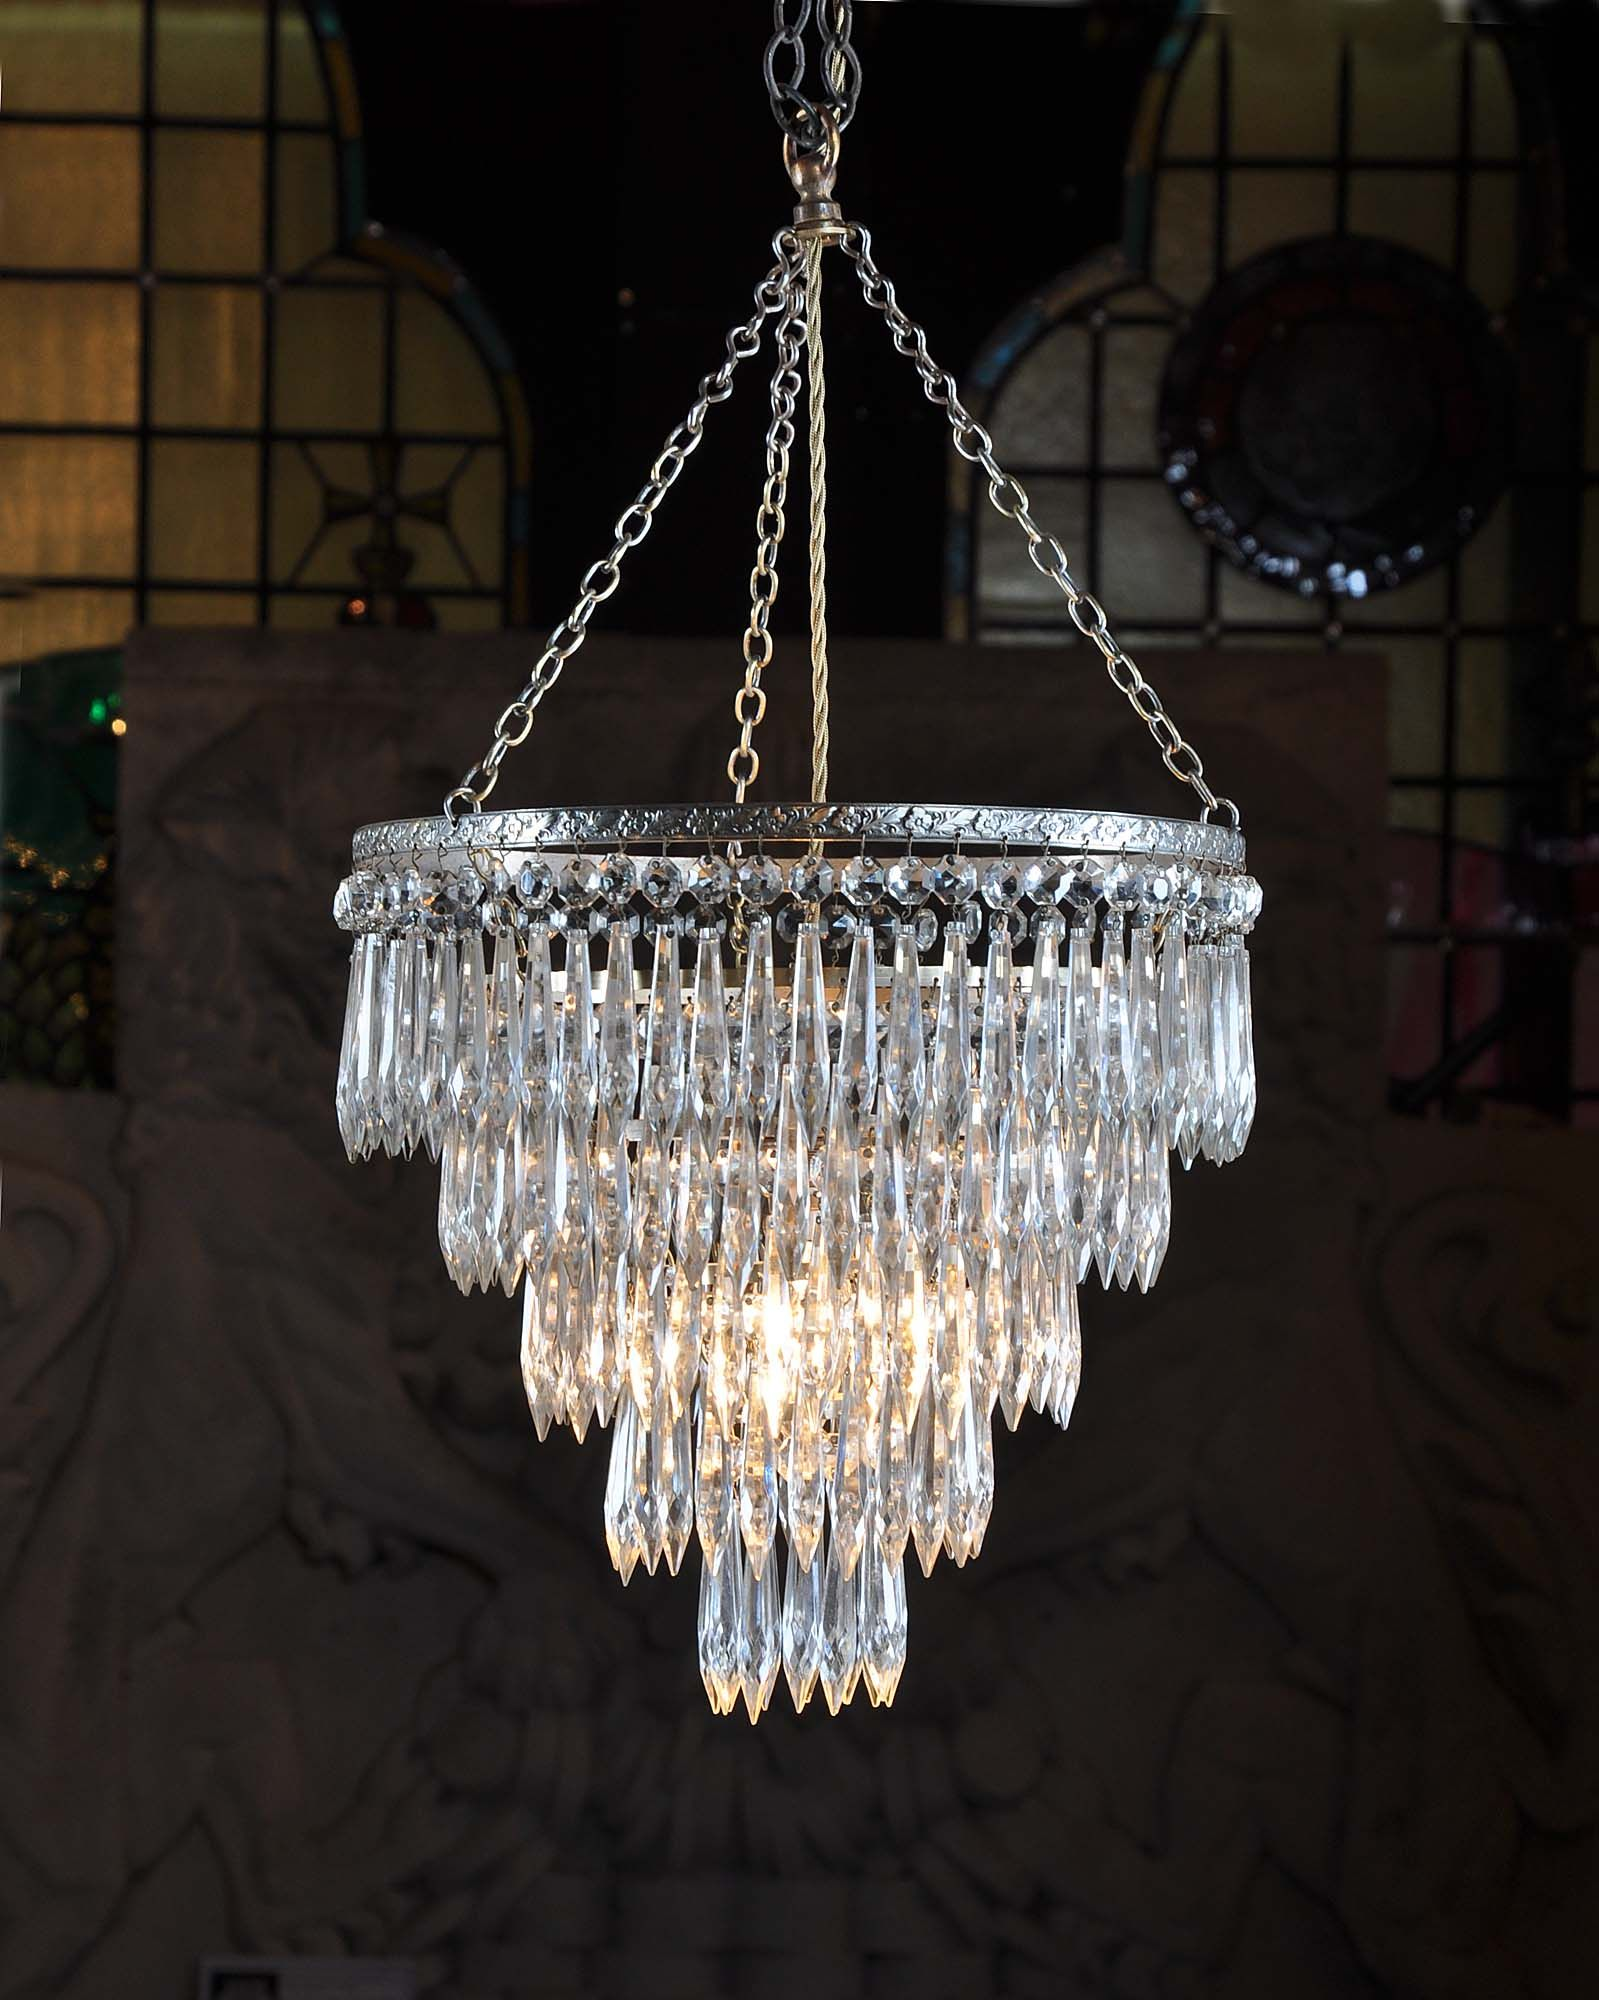 Small antique cut glass chandelier - Small Antique Cut Glass Chandelier Antique Cut Glass Pinterest